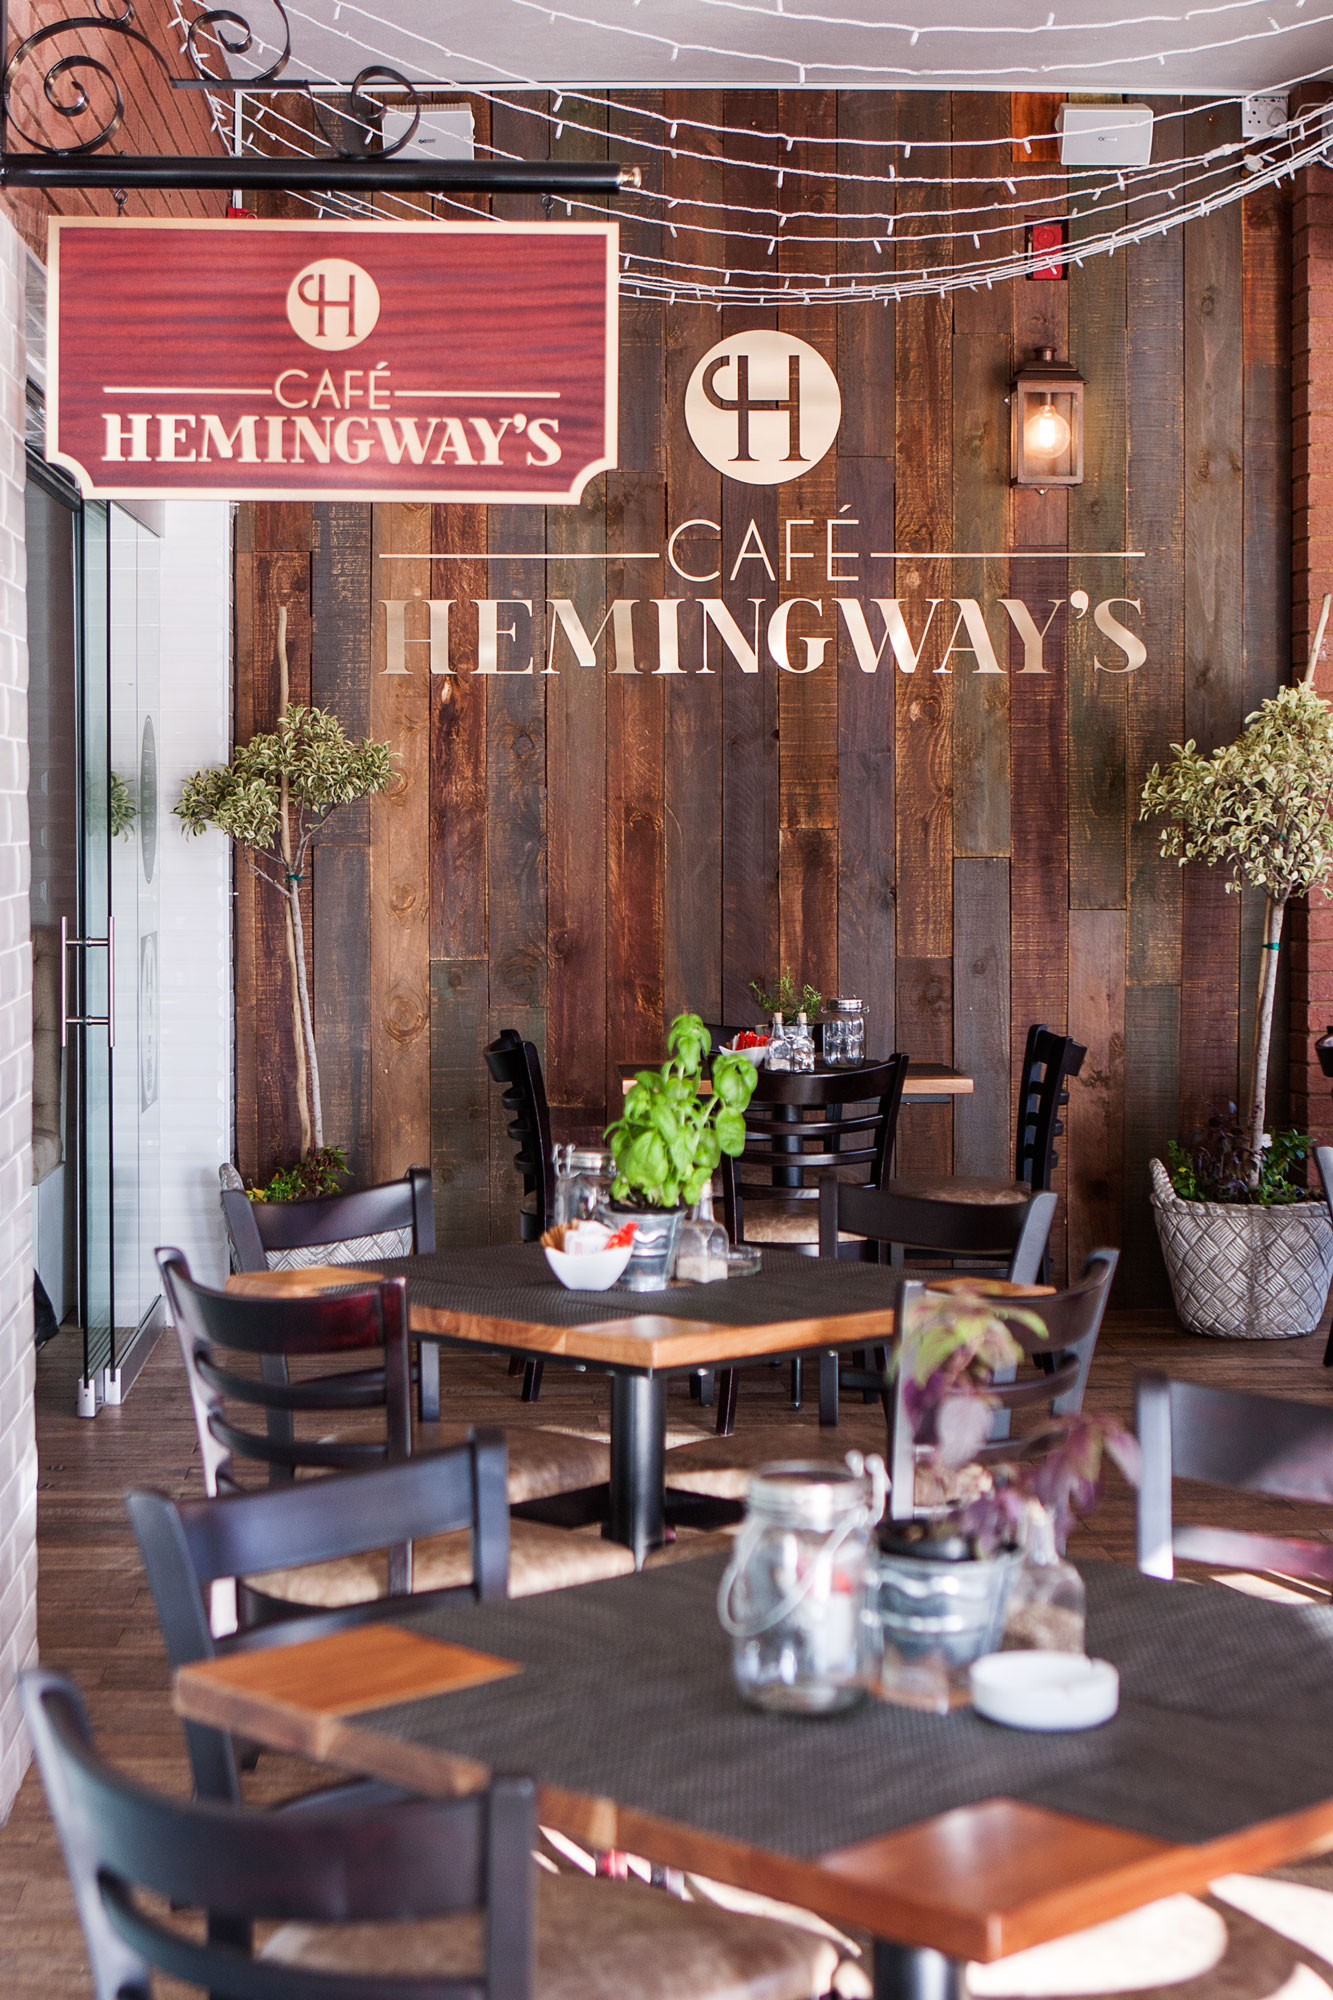 Hemingways-Food-023